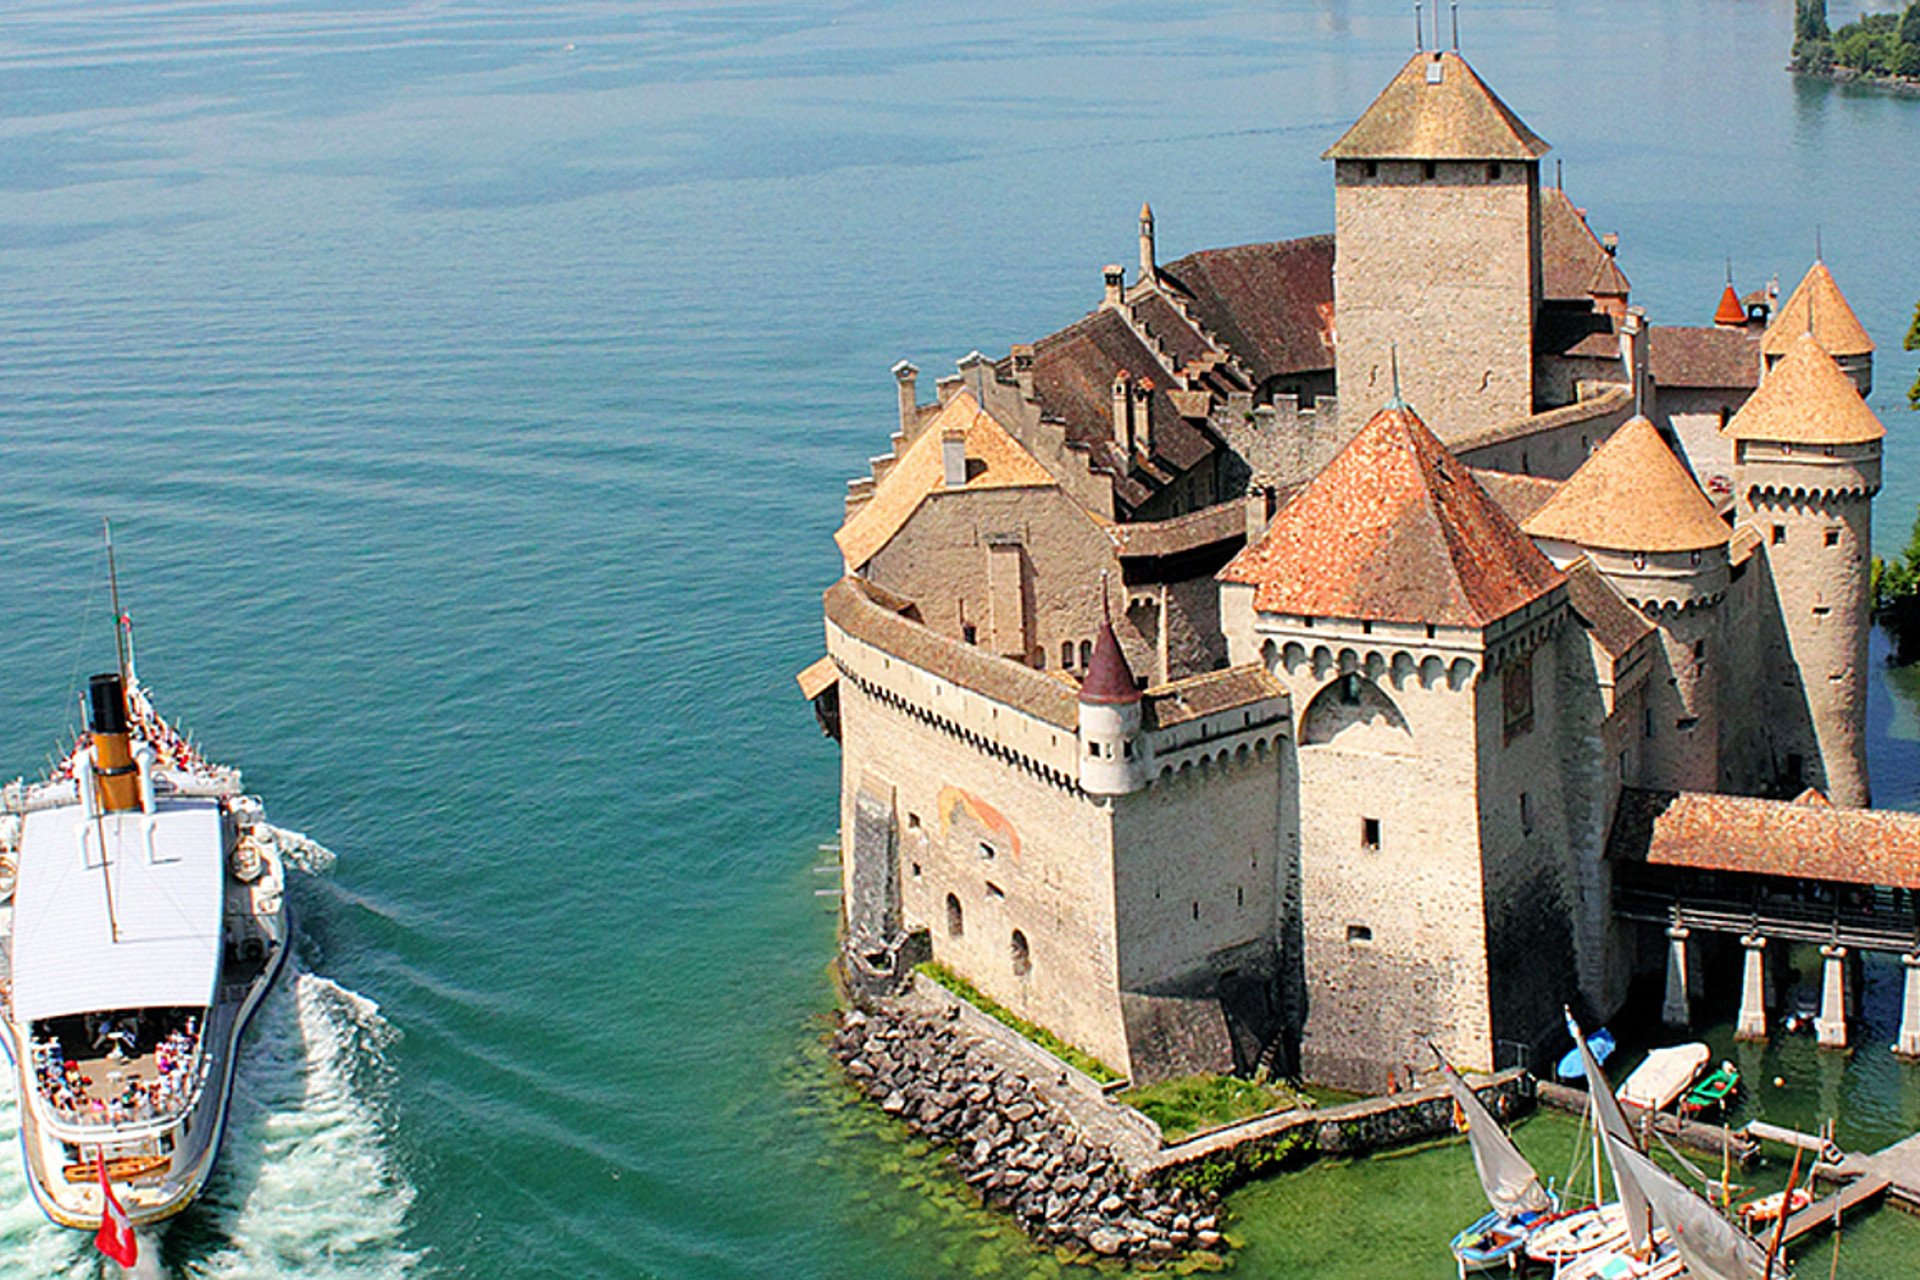 Aerial view of a boat near Château de Chillon